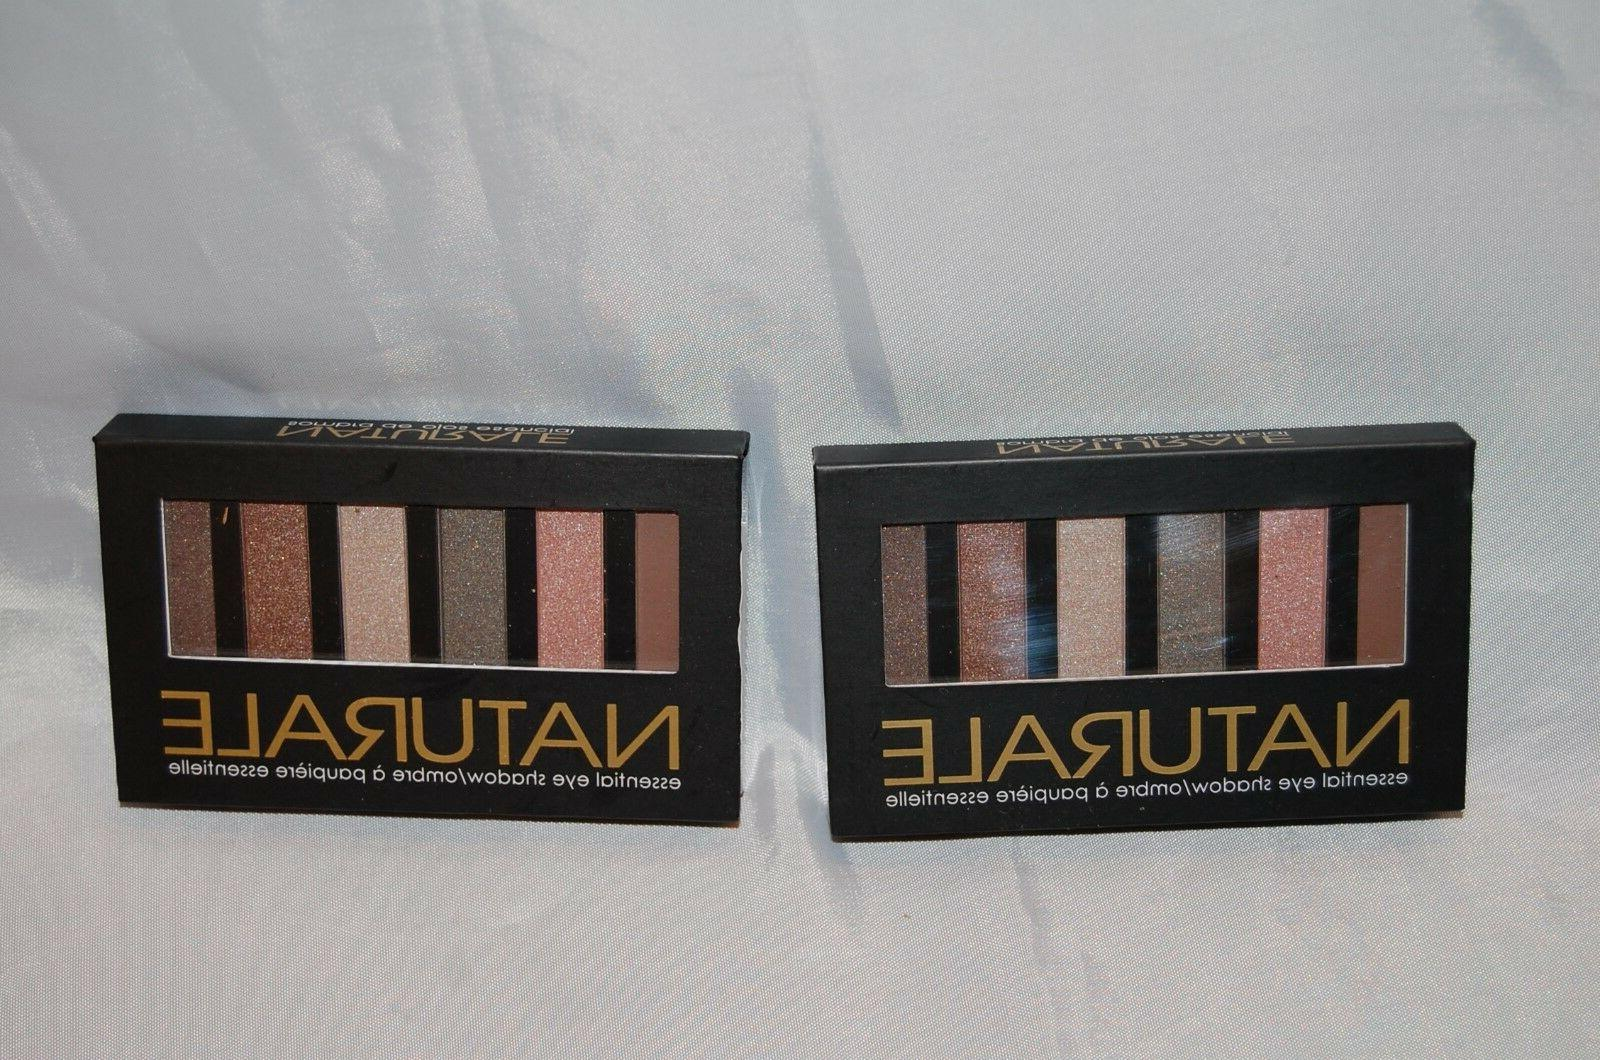 New of 2 Naturale Essential Eye Make-Up Palette